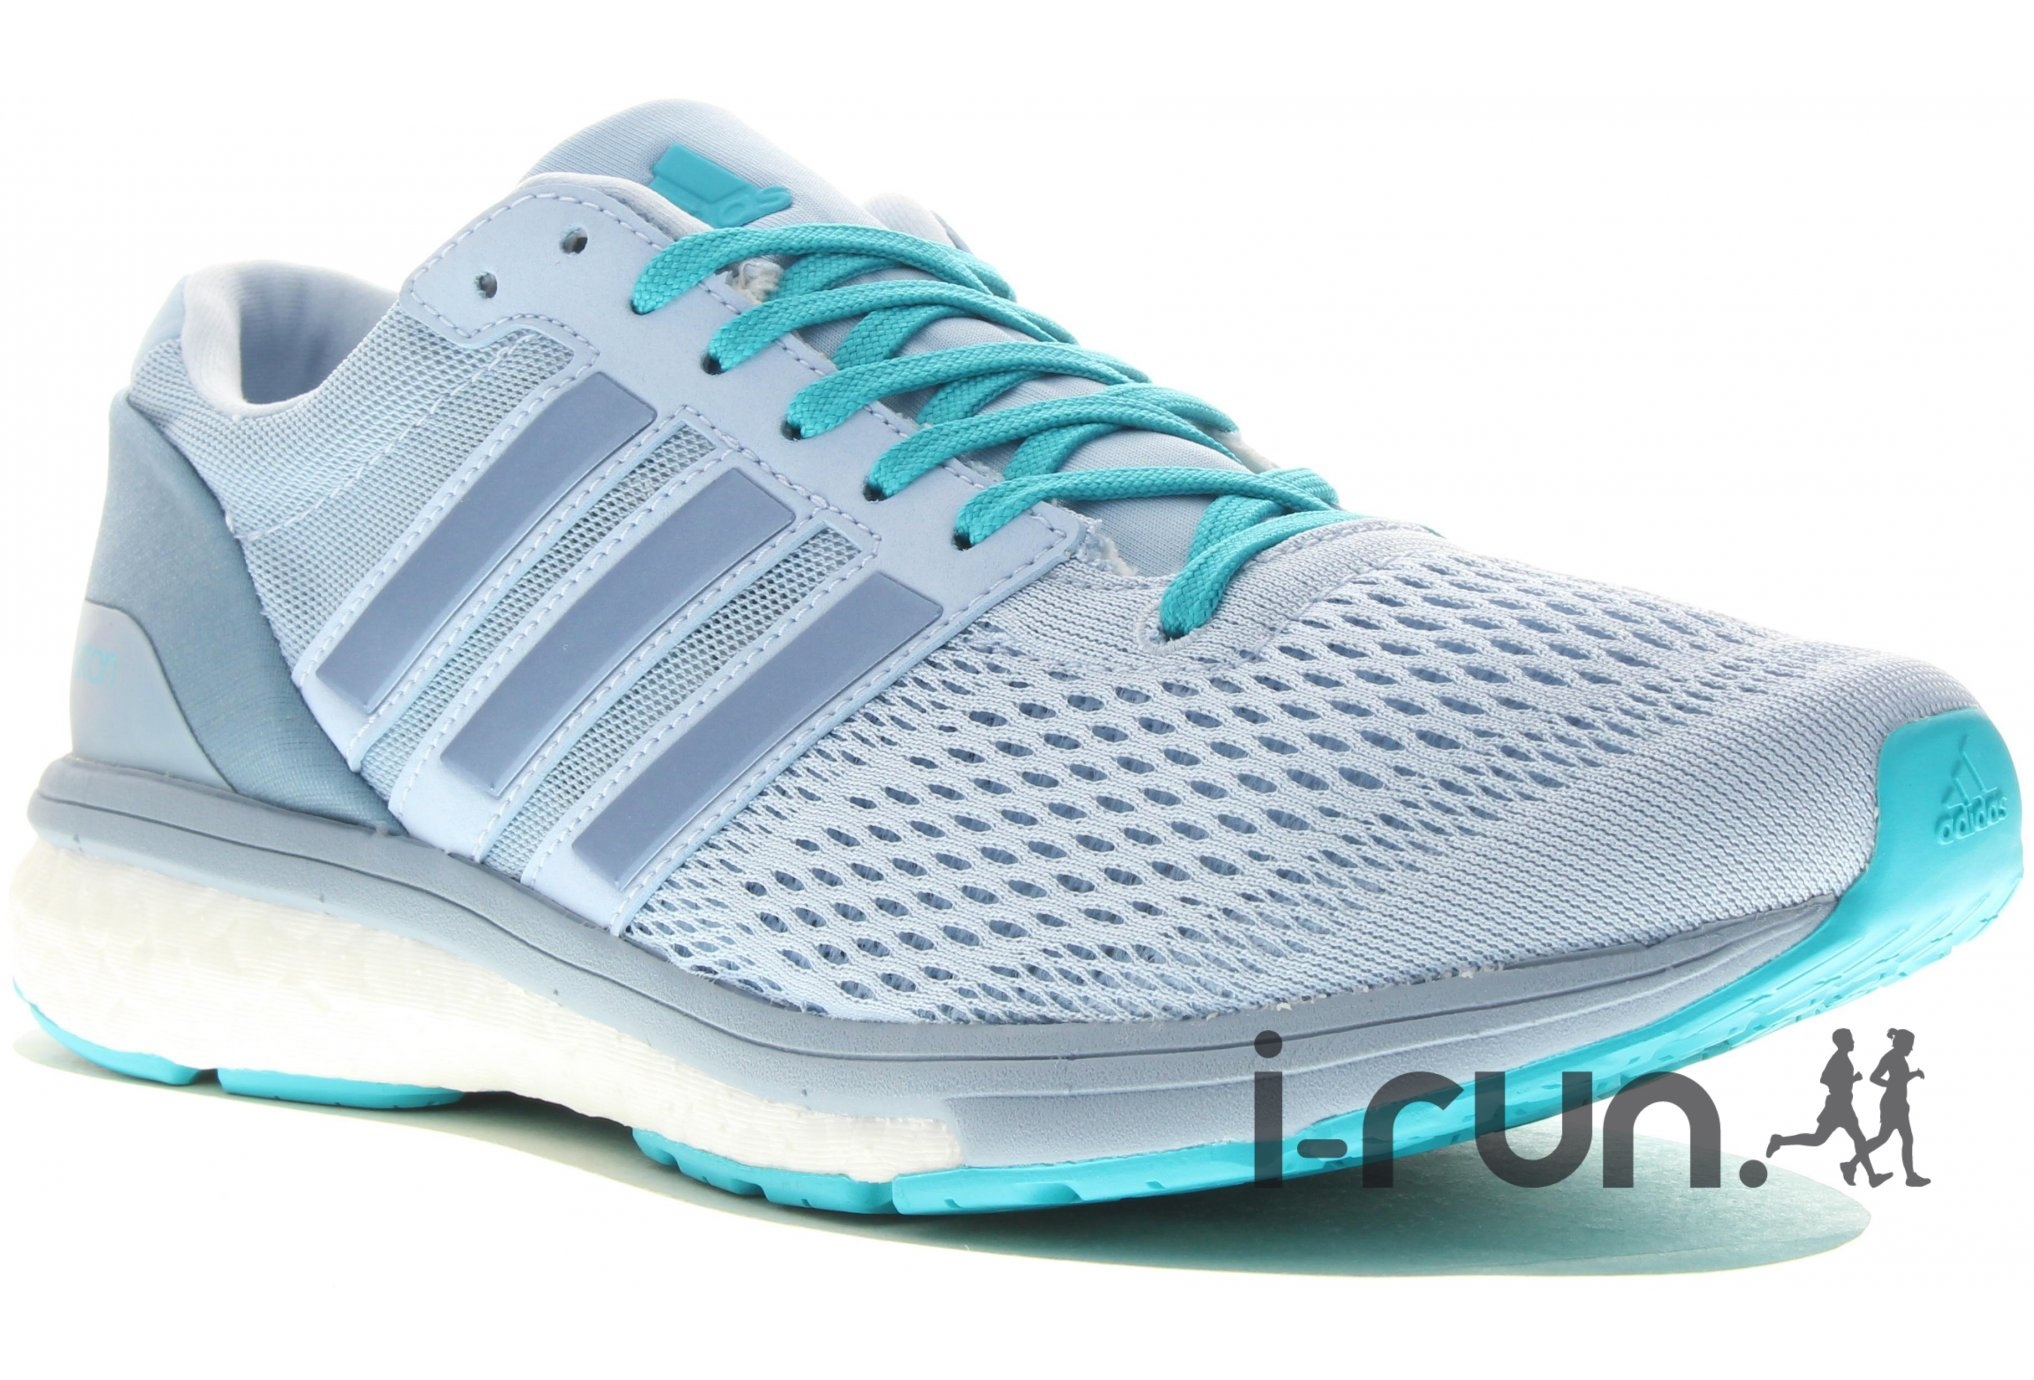 Adidas Adizero boston boost 6 w chaussures running femme